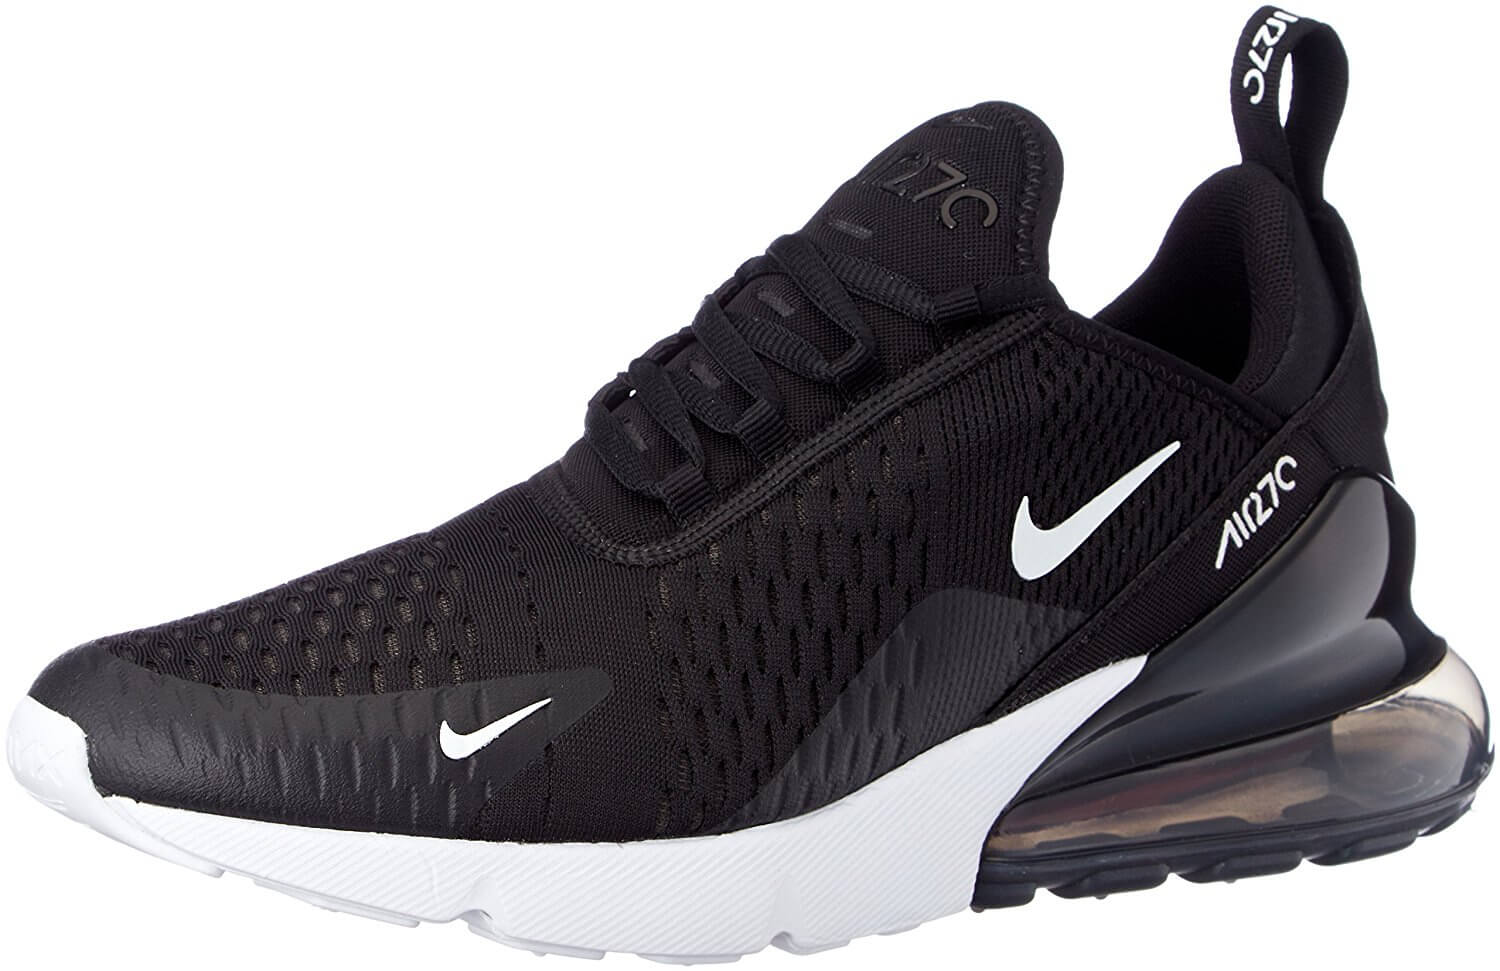 Nike Air Max 270 Reviewed - To Buy or Not in Mar 2019  e60abd897